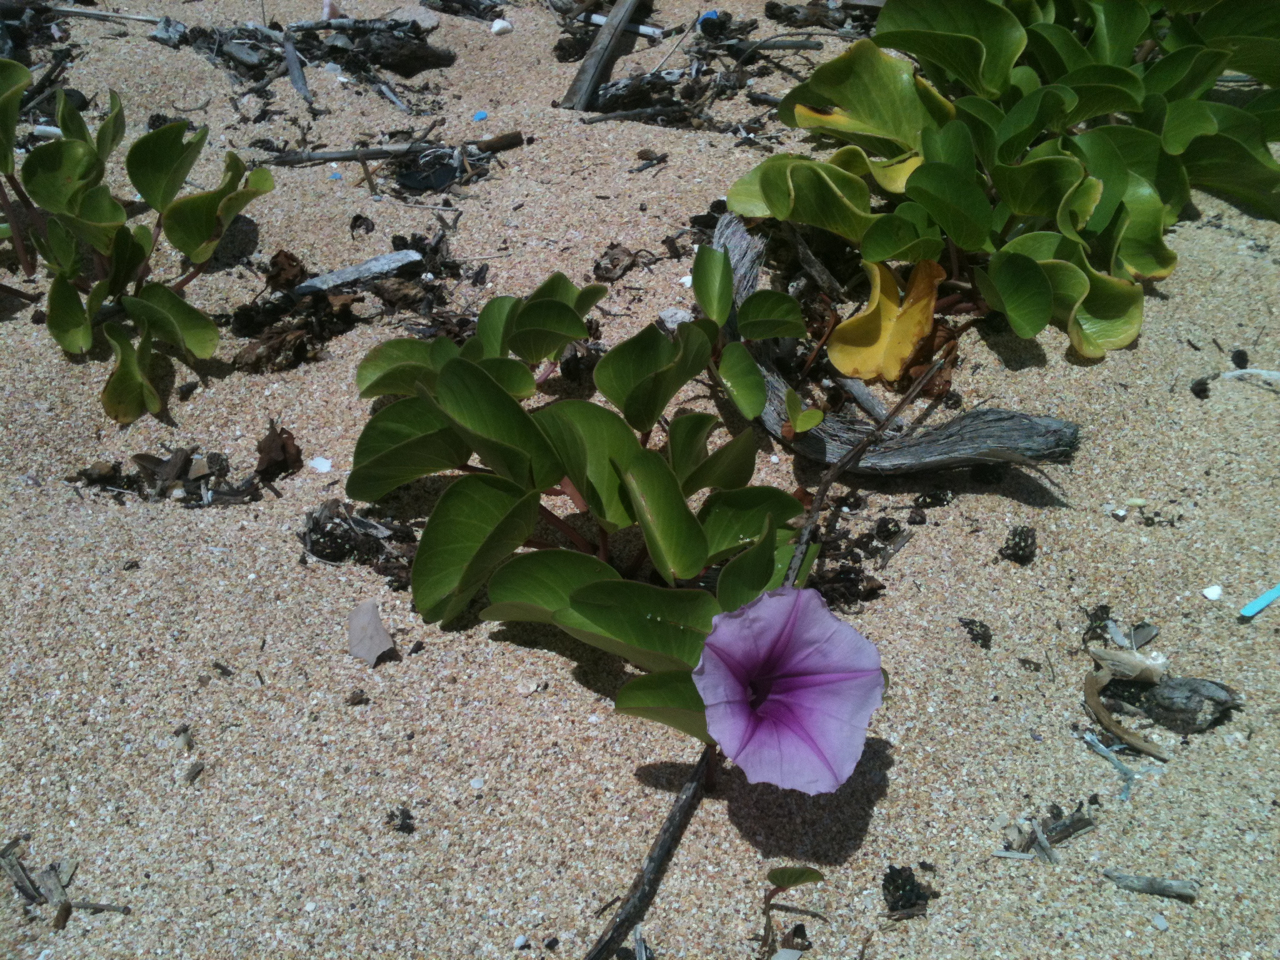 Currently on the isle of Kauai- Ipomoea pes-caprae. This gorgeous sprawling vine spans the glorious shorelines of Hawaii. Commonly known as beach morning glory. Typically found in subtropical environments, the vine flourishes above the high tide line on coastal beaches. This species of morning glory is extremely salt tolerant and is most usually found on or near beaches. Native Hawaiians cultivated beach morning glory for its healing properties. The vines, seeds, leaves and roots were used as a poultice for skin ailments and broken bones. We were lucky to catch these flowers as they are short lived and fall off from the afternoon heat. I would use this similarly to what we have on the main land: ubiquitous plantain.